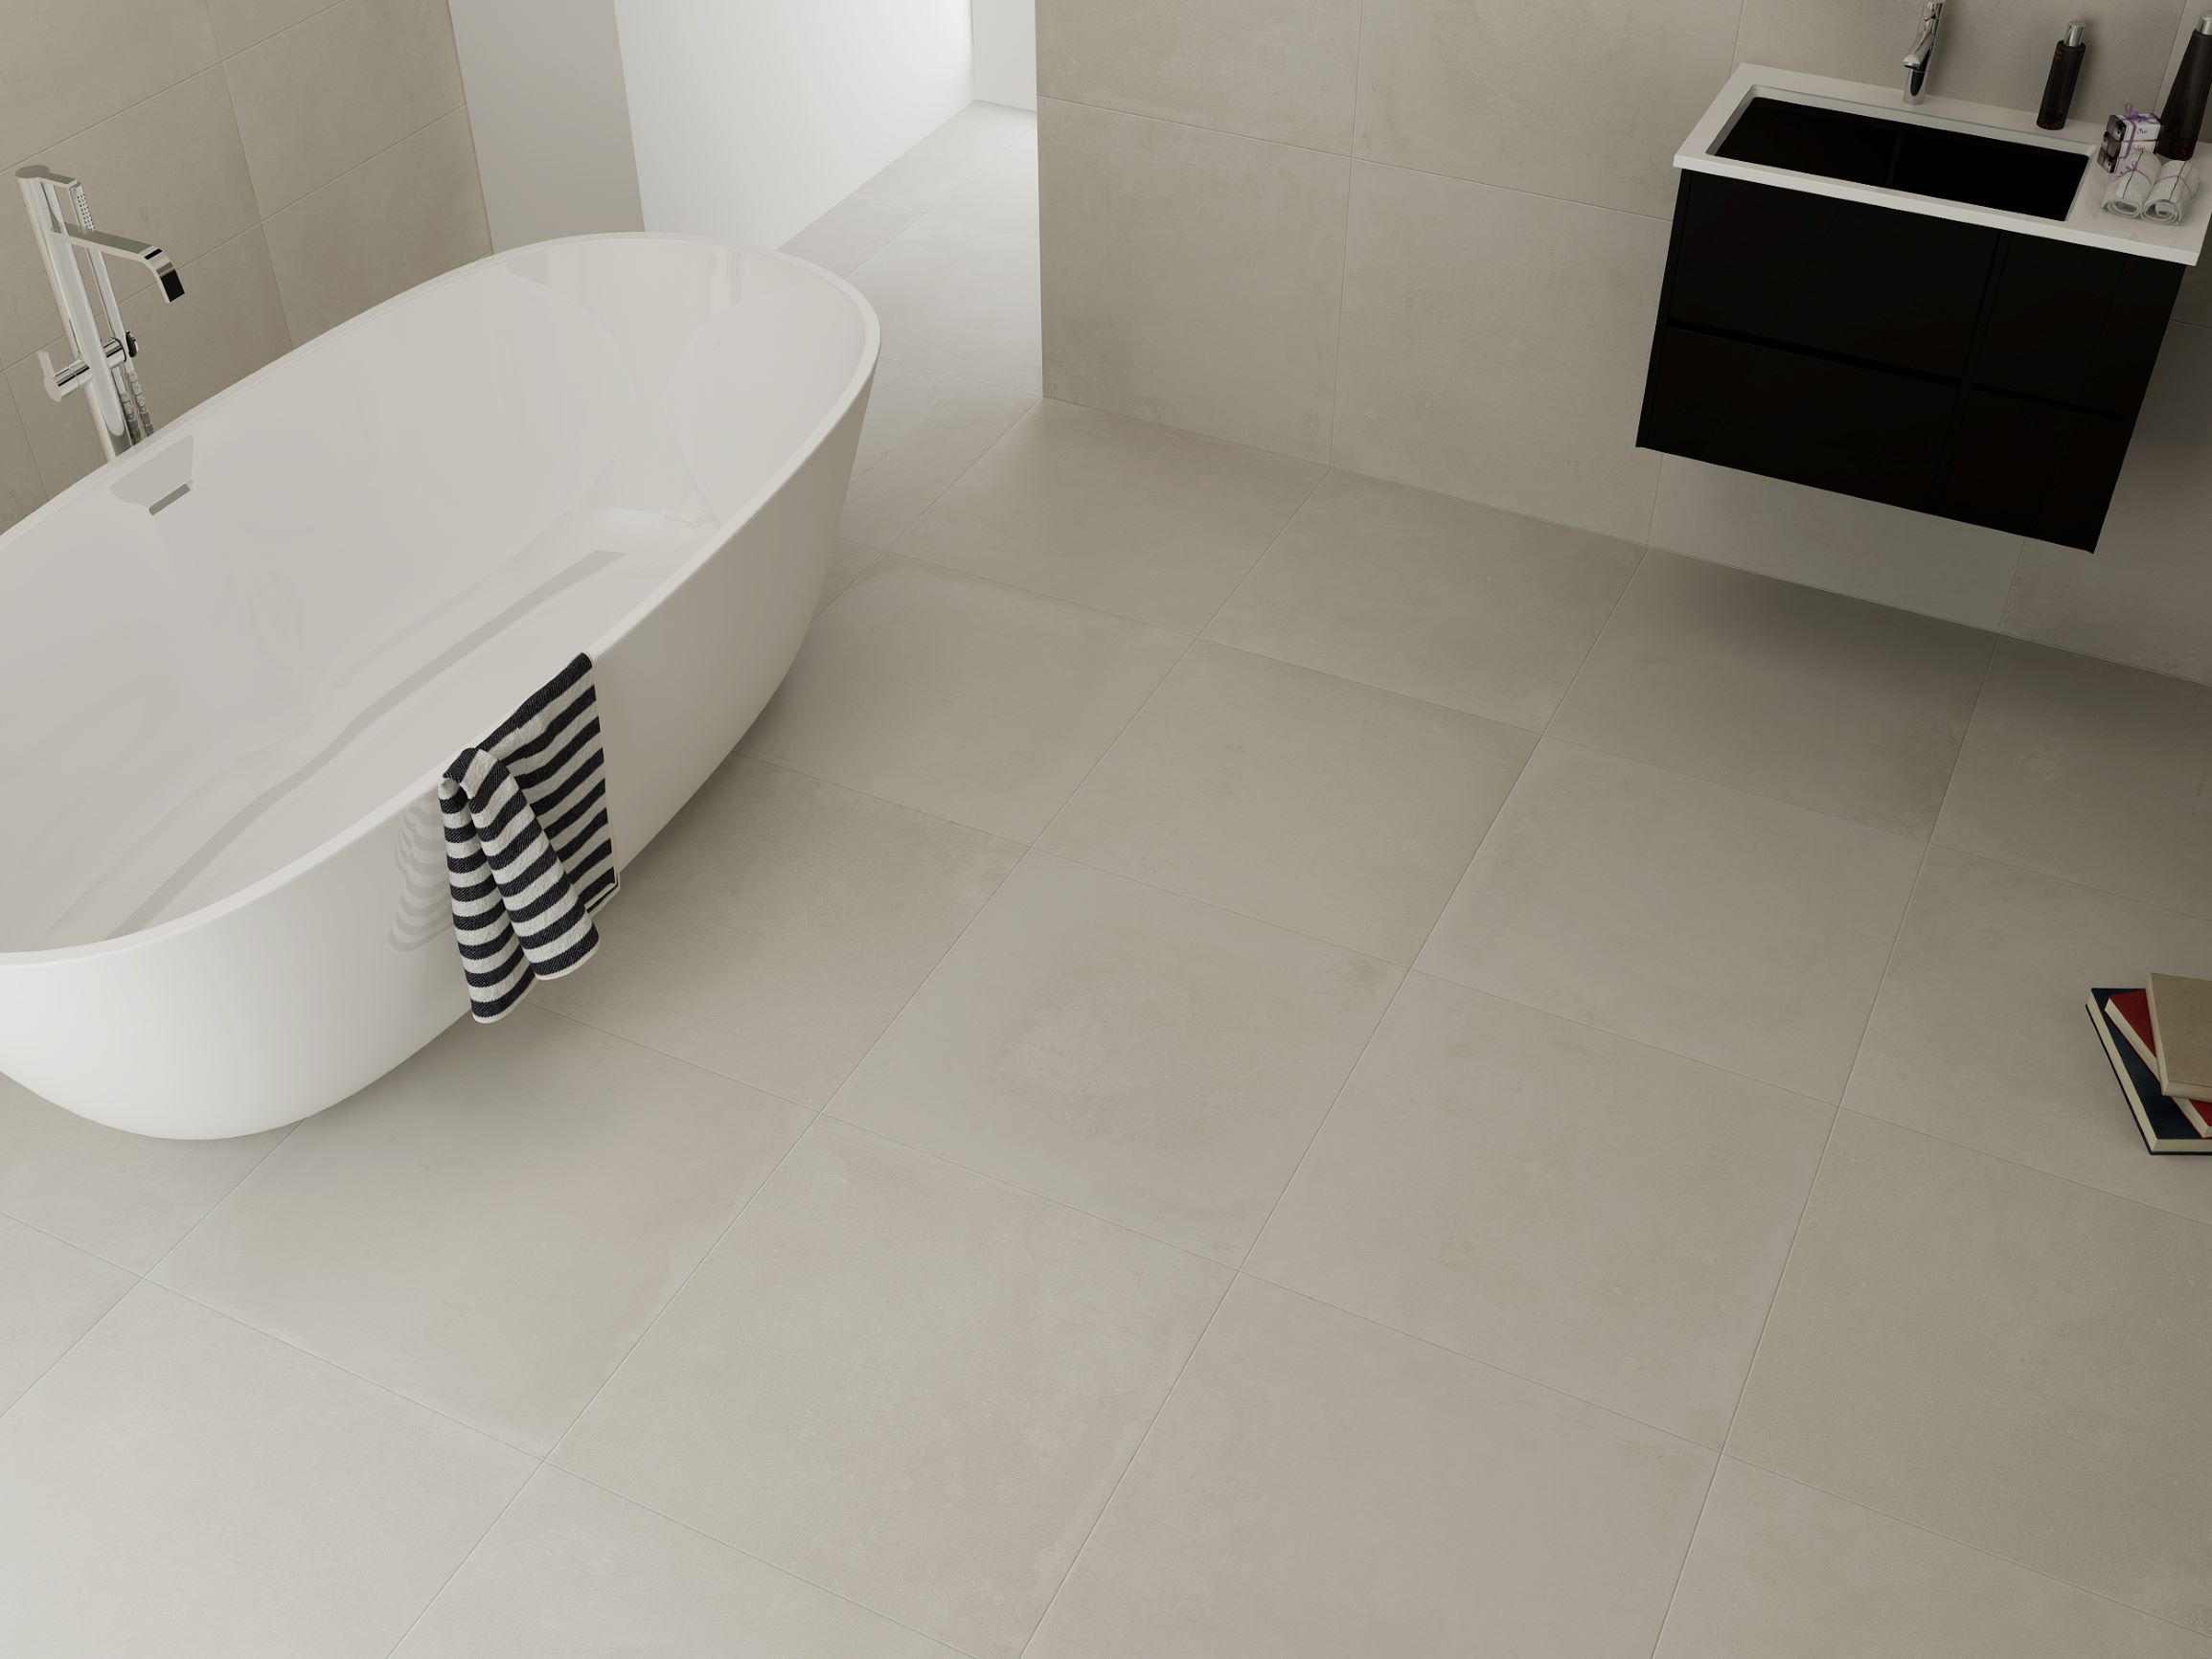 ARDEN-Terrazzo Porcelain 600x600 Ivory. This colour mix softens the contrast from light to dark tones.